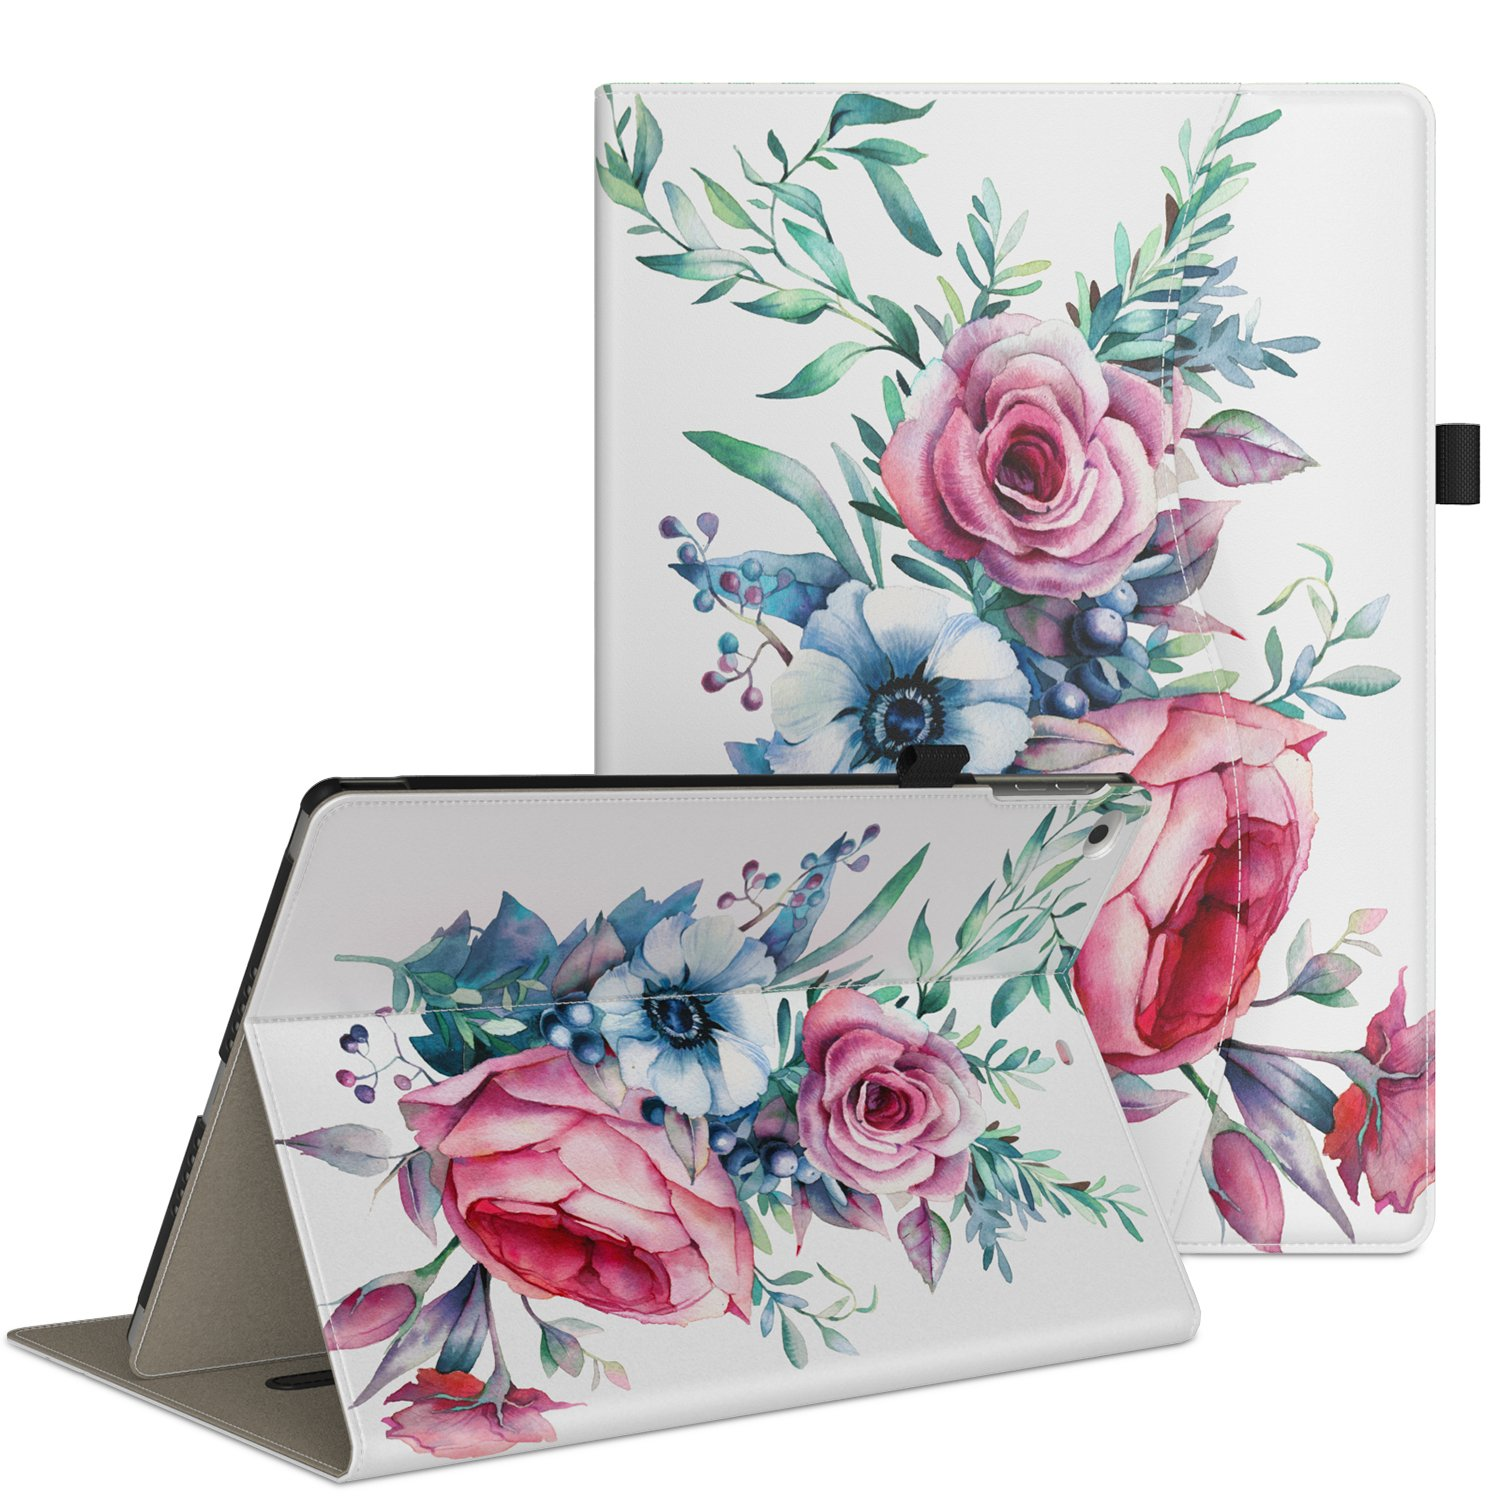 VORI Case for New iPad 9.7 Inch 2018 2017 / iPad Air 2 / iPad Air ,Premium Leather Business Multi-Angle Viewing Folio Stand Cover with Card Slots, Auto Wake / Sleep-Peony